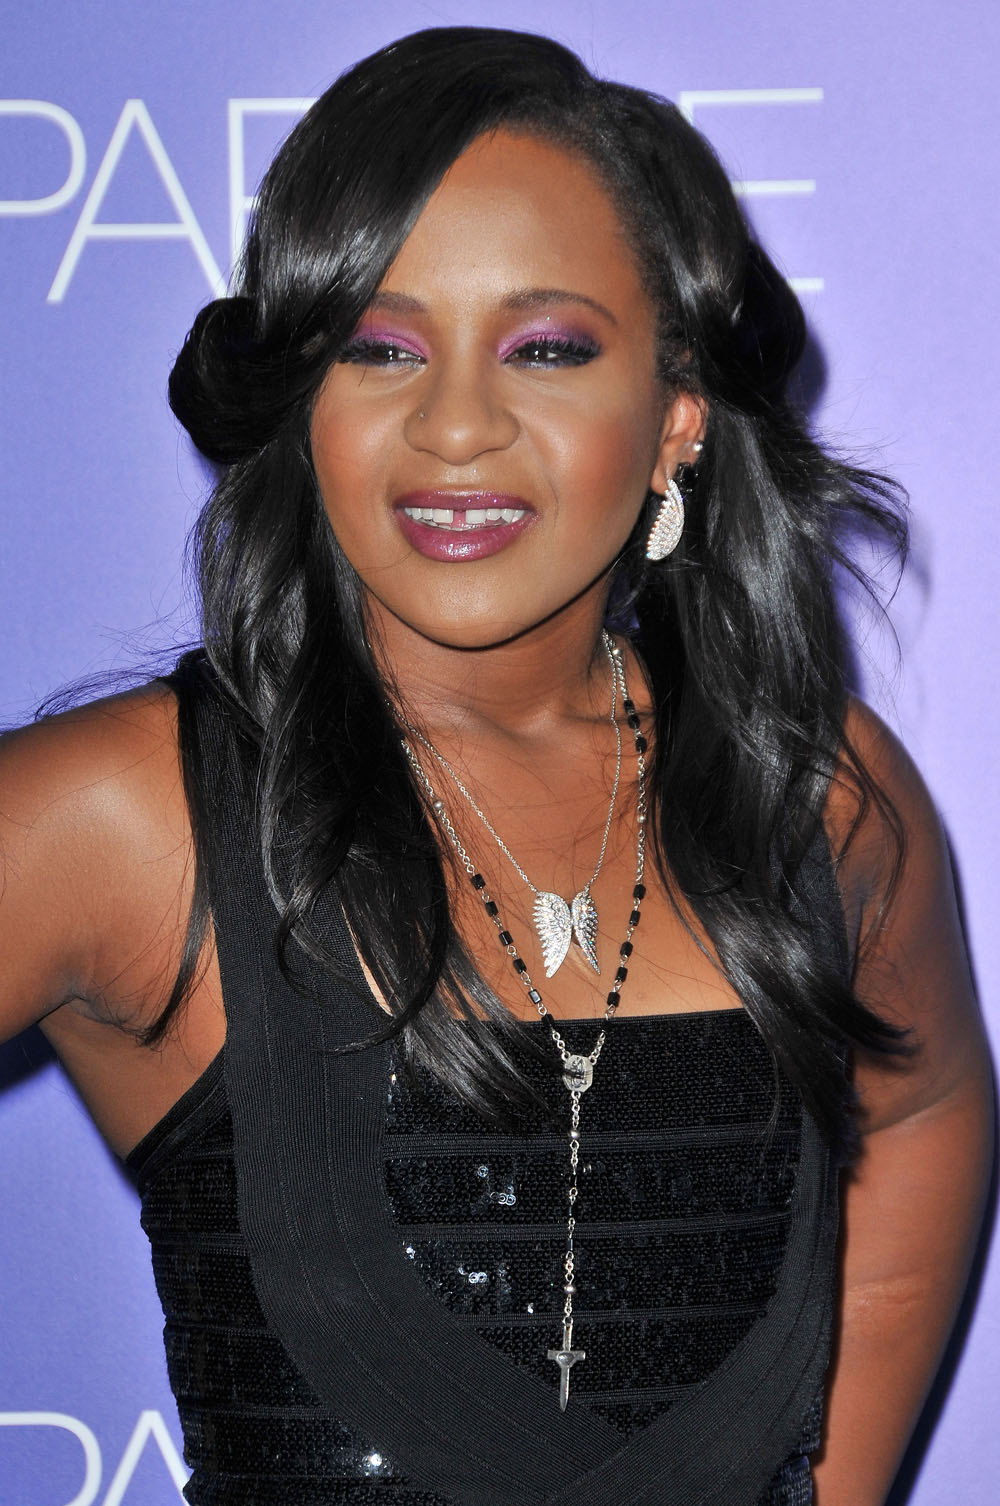 News relationships top news whitney houston 0 comments 811 views